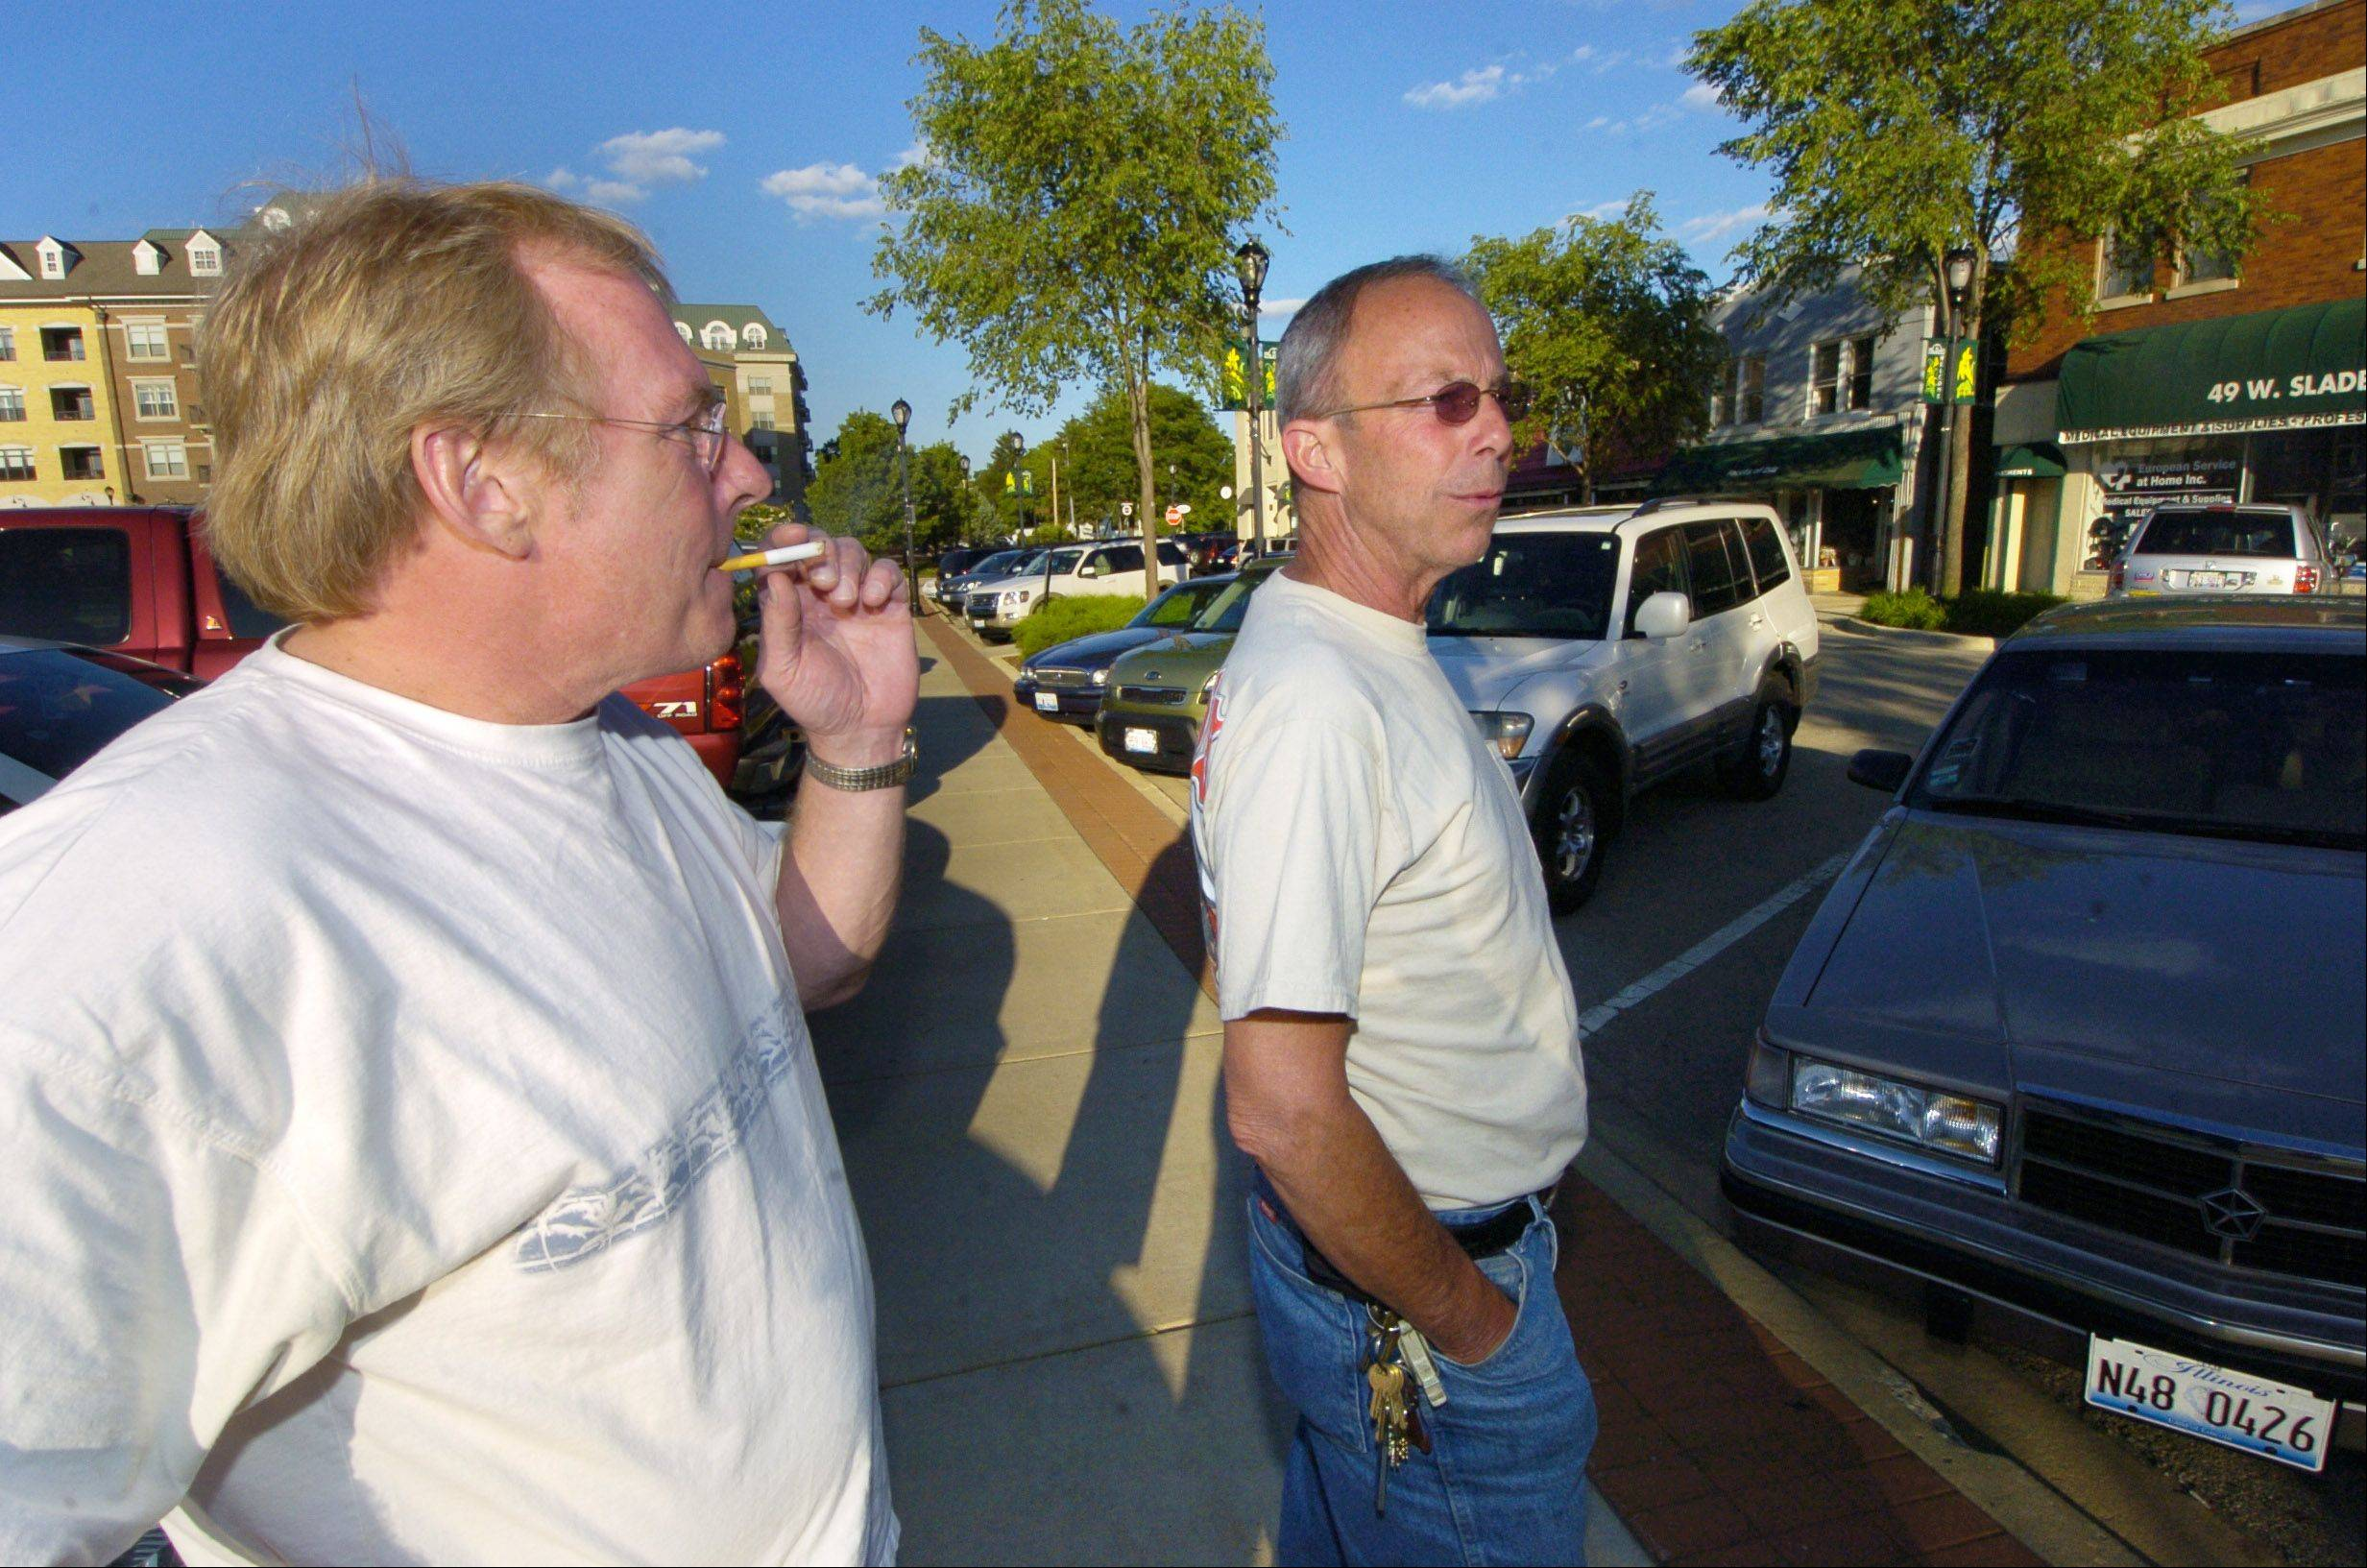 Michael Casey, left, and Kevin O'Neal, both of Palatine, chat while smoking across the street from T.J. O'Brien's in Palatine.